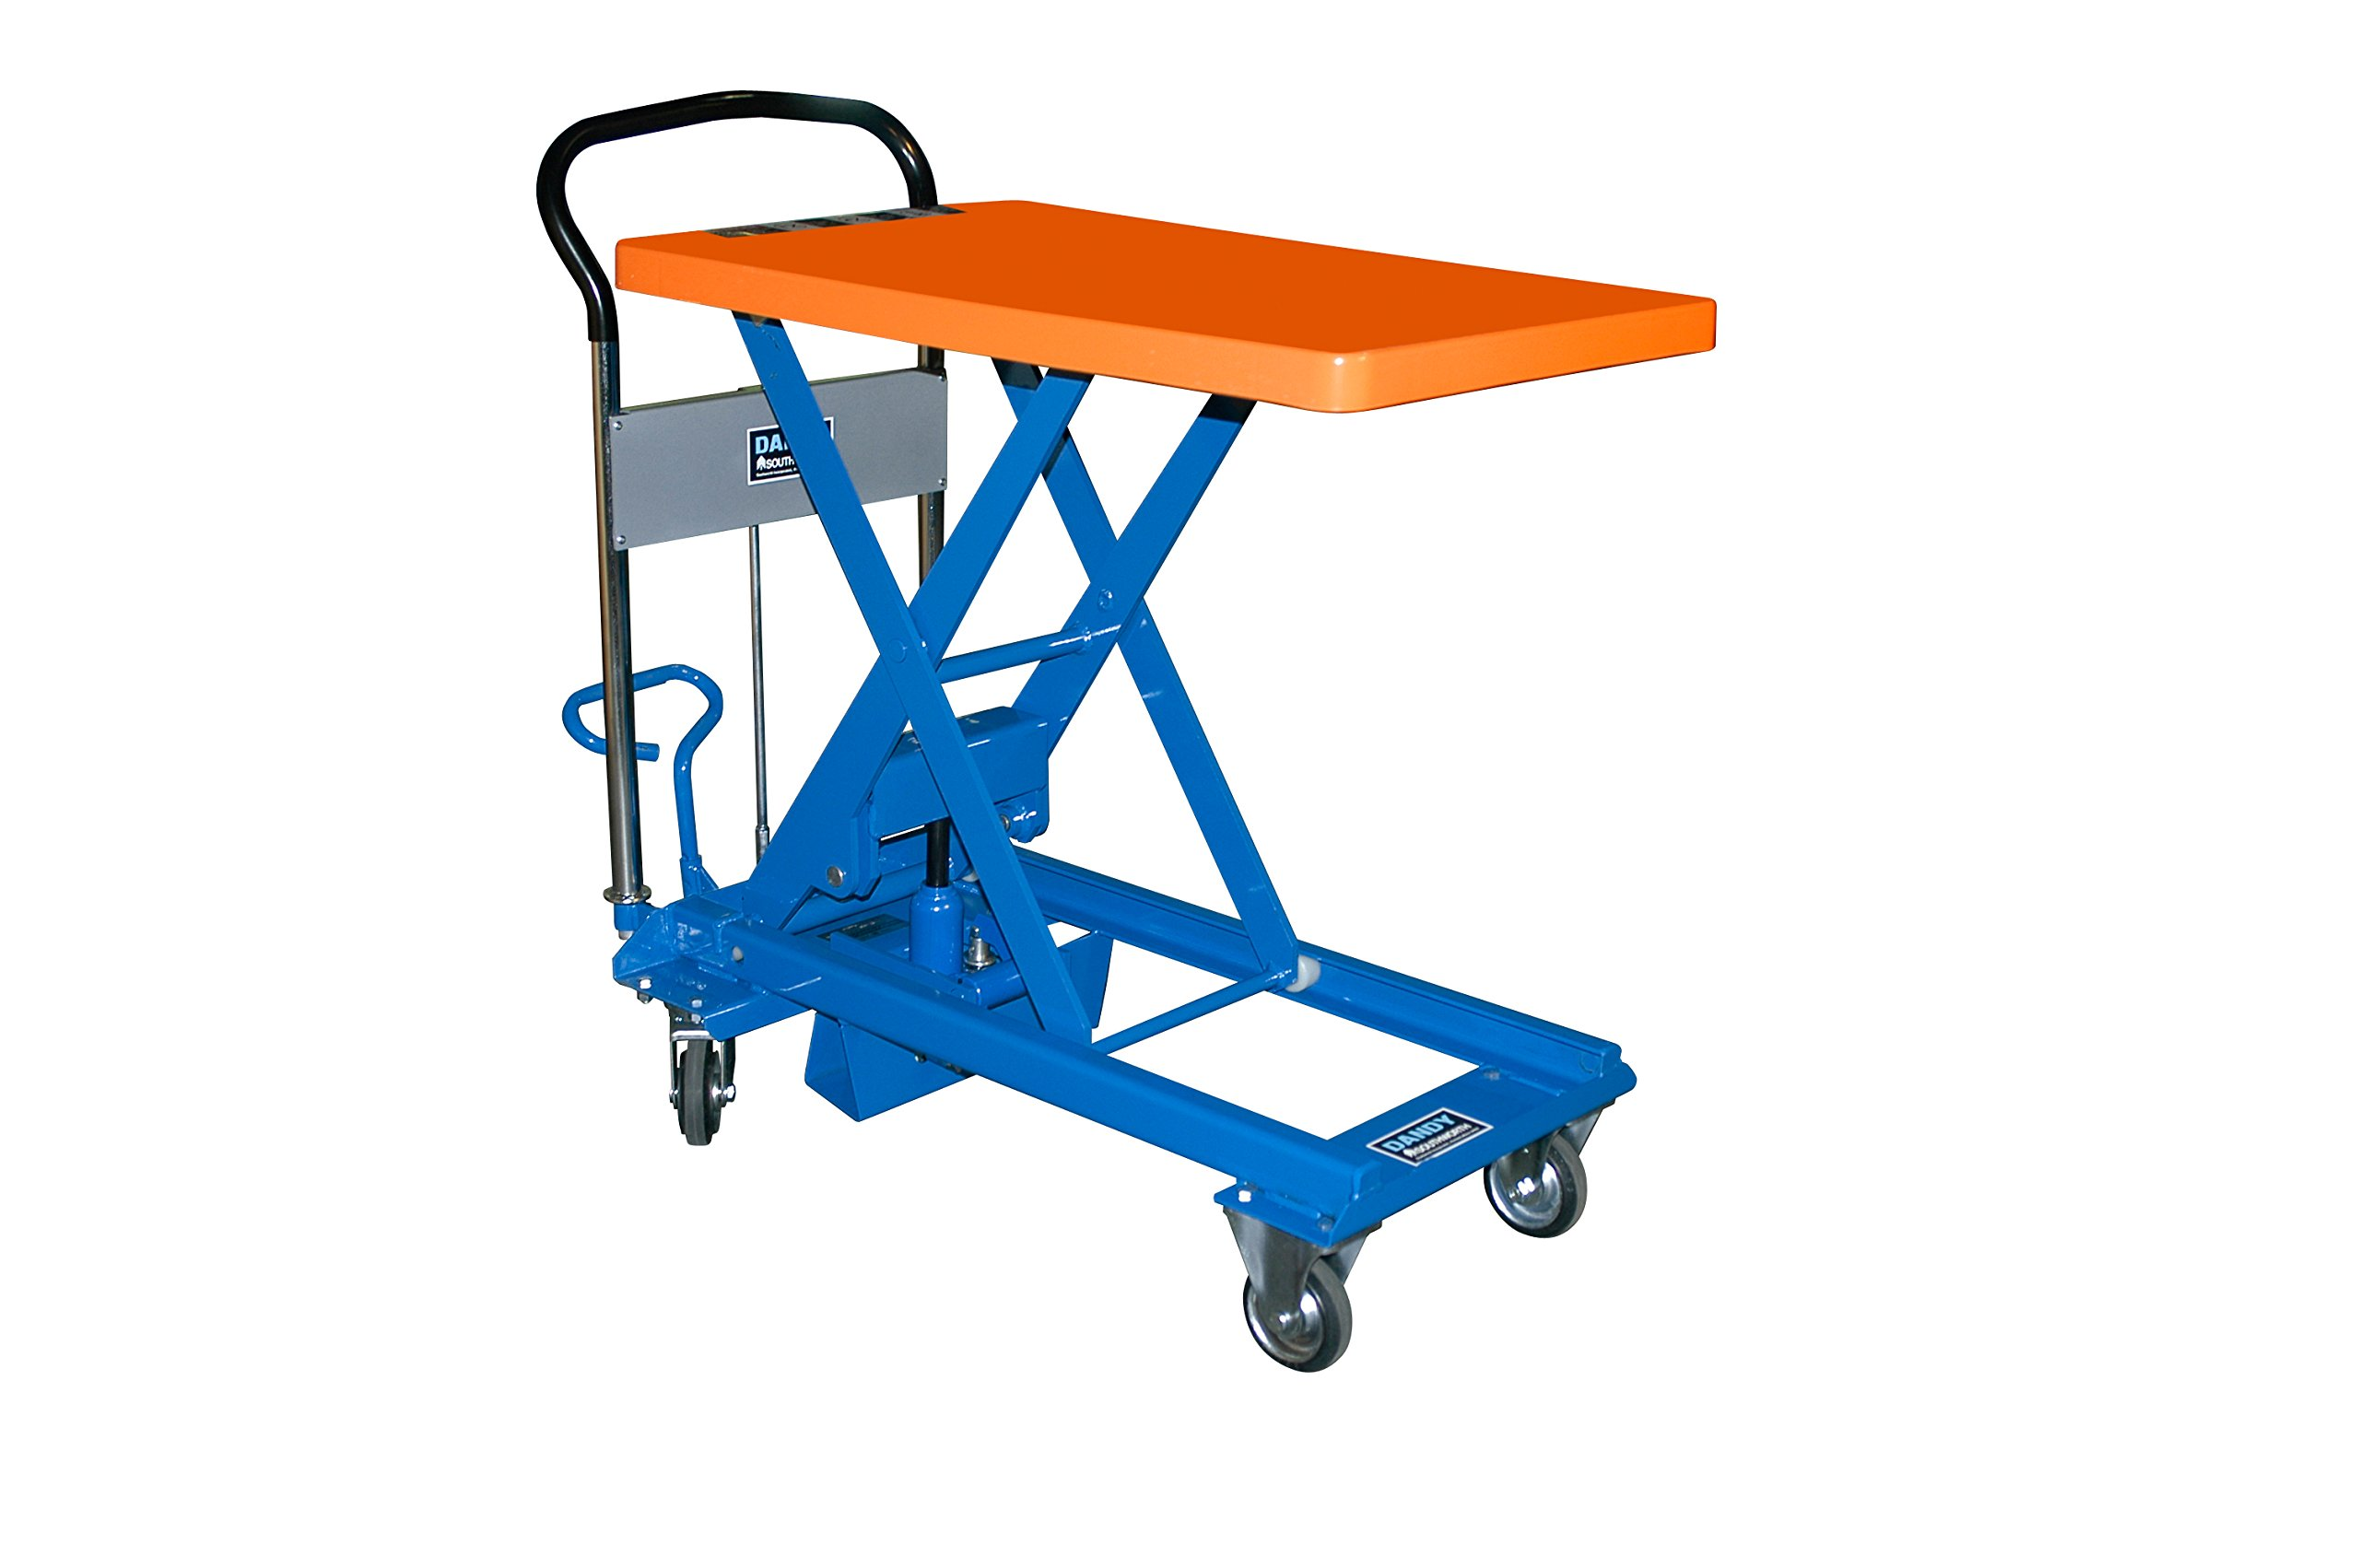 Southworth Products L-250 Dandy Manual Scissor Lift Cart, Foot Pump, 550 lb. Capacity, 19.7'' x 31.5'' Platform